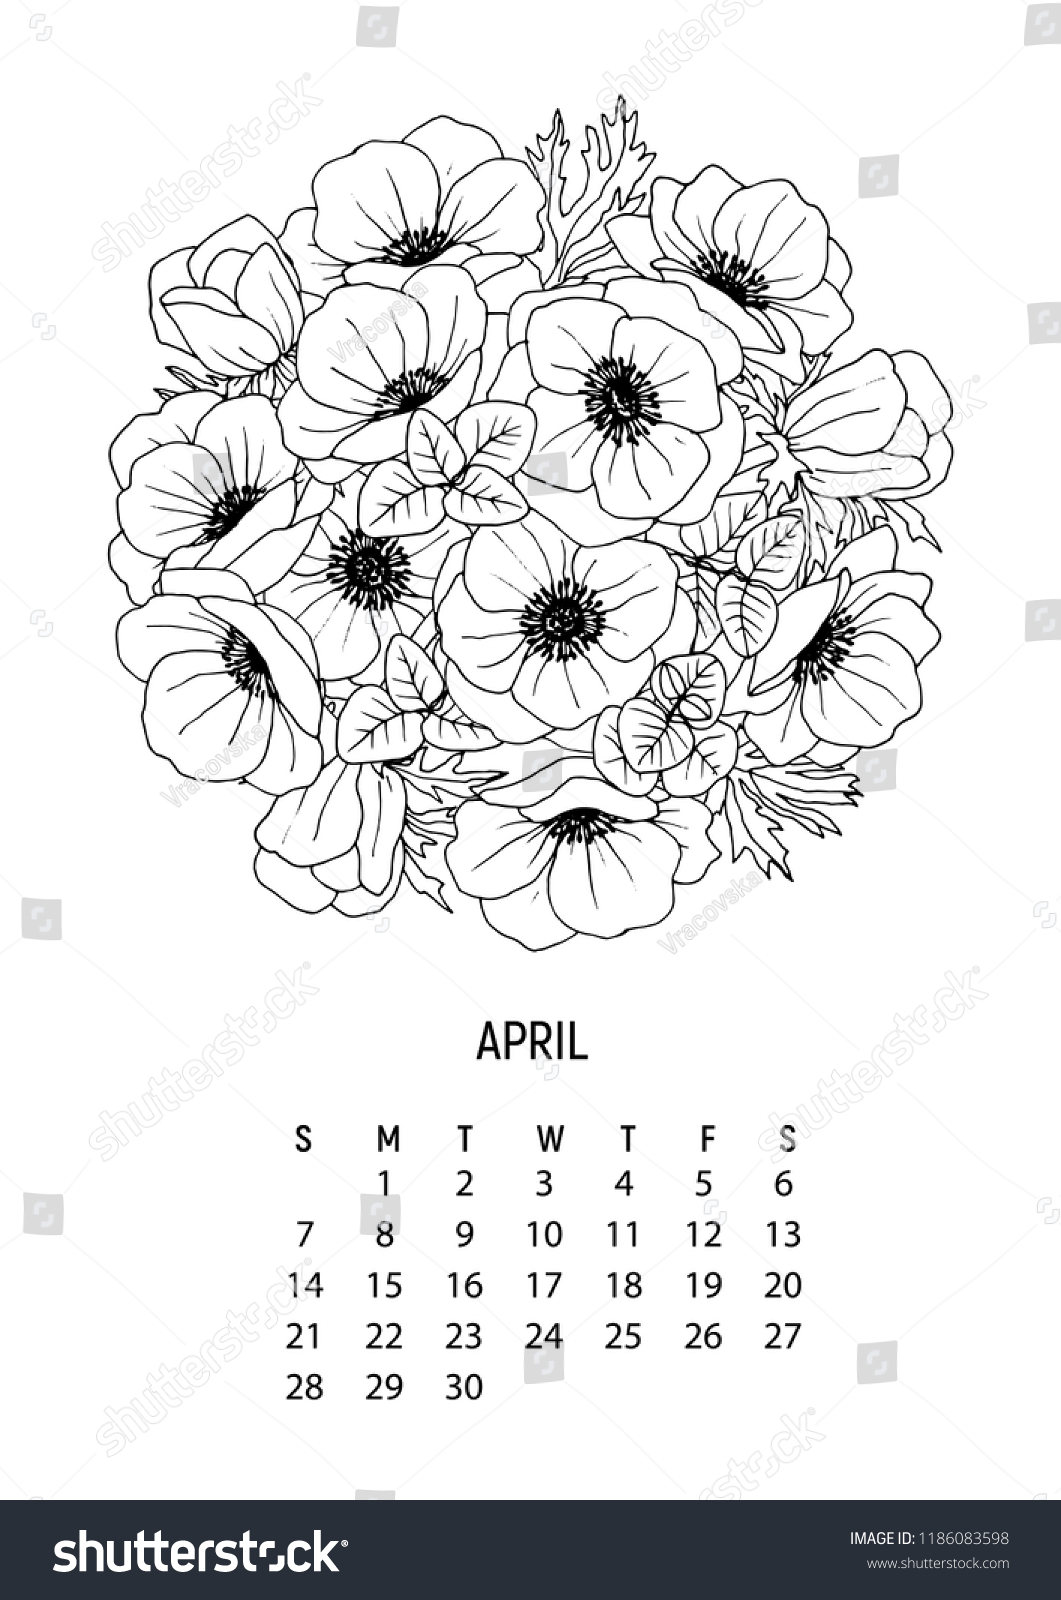 December Calendar 2019 Coloring Pages Printable | 1600x1061